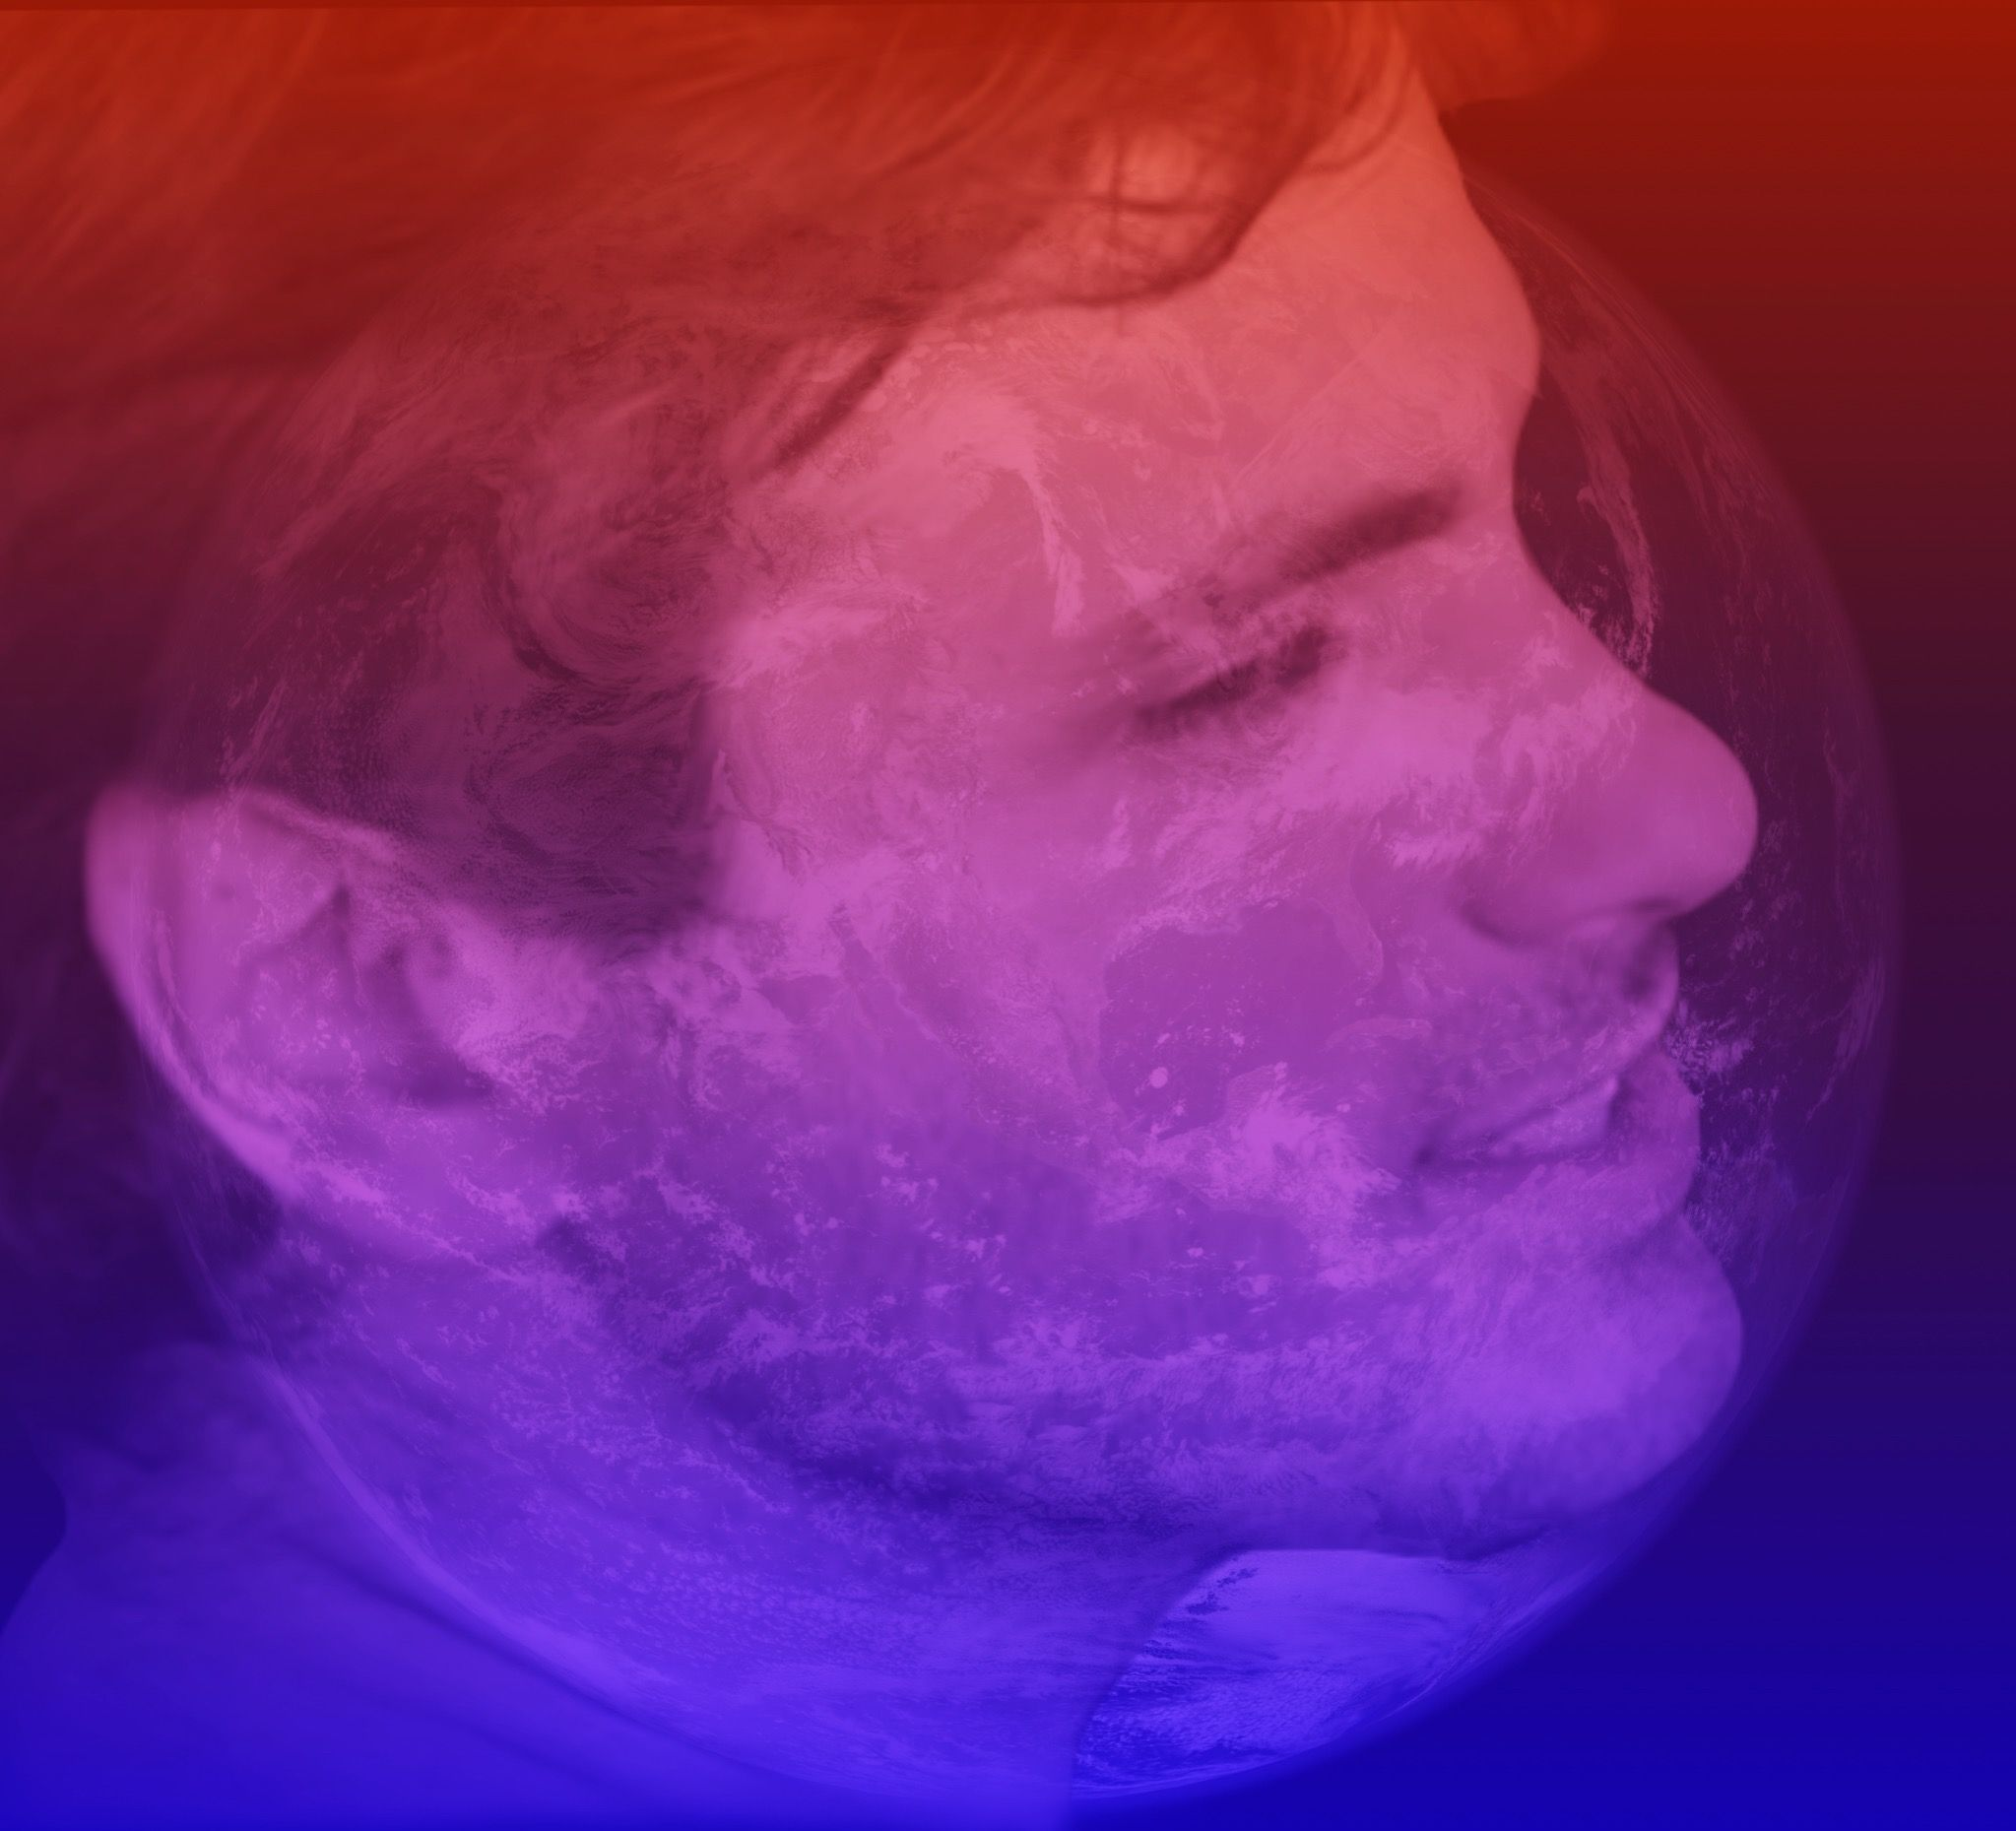 #stjepan #2cellos